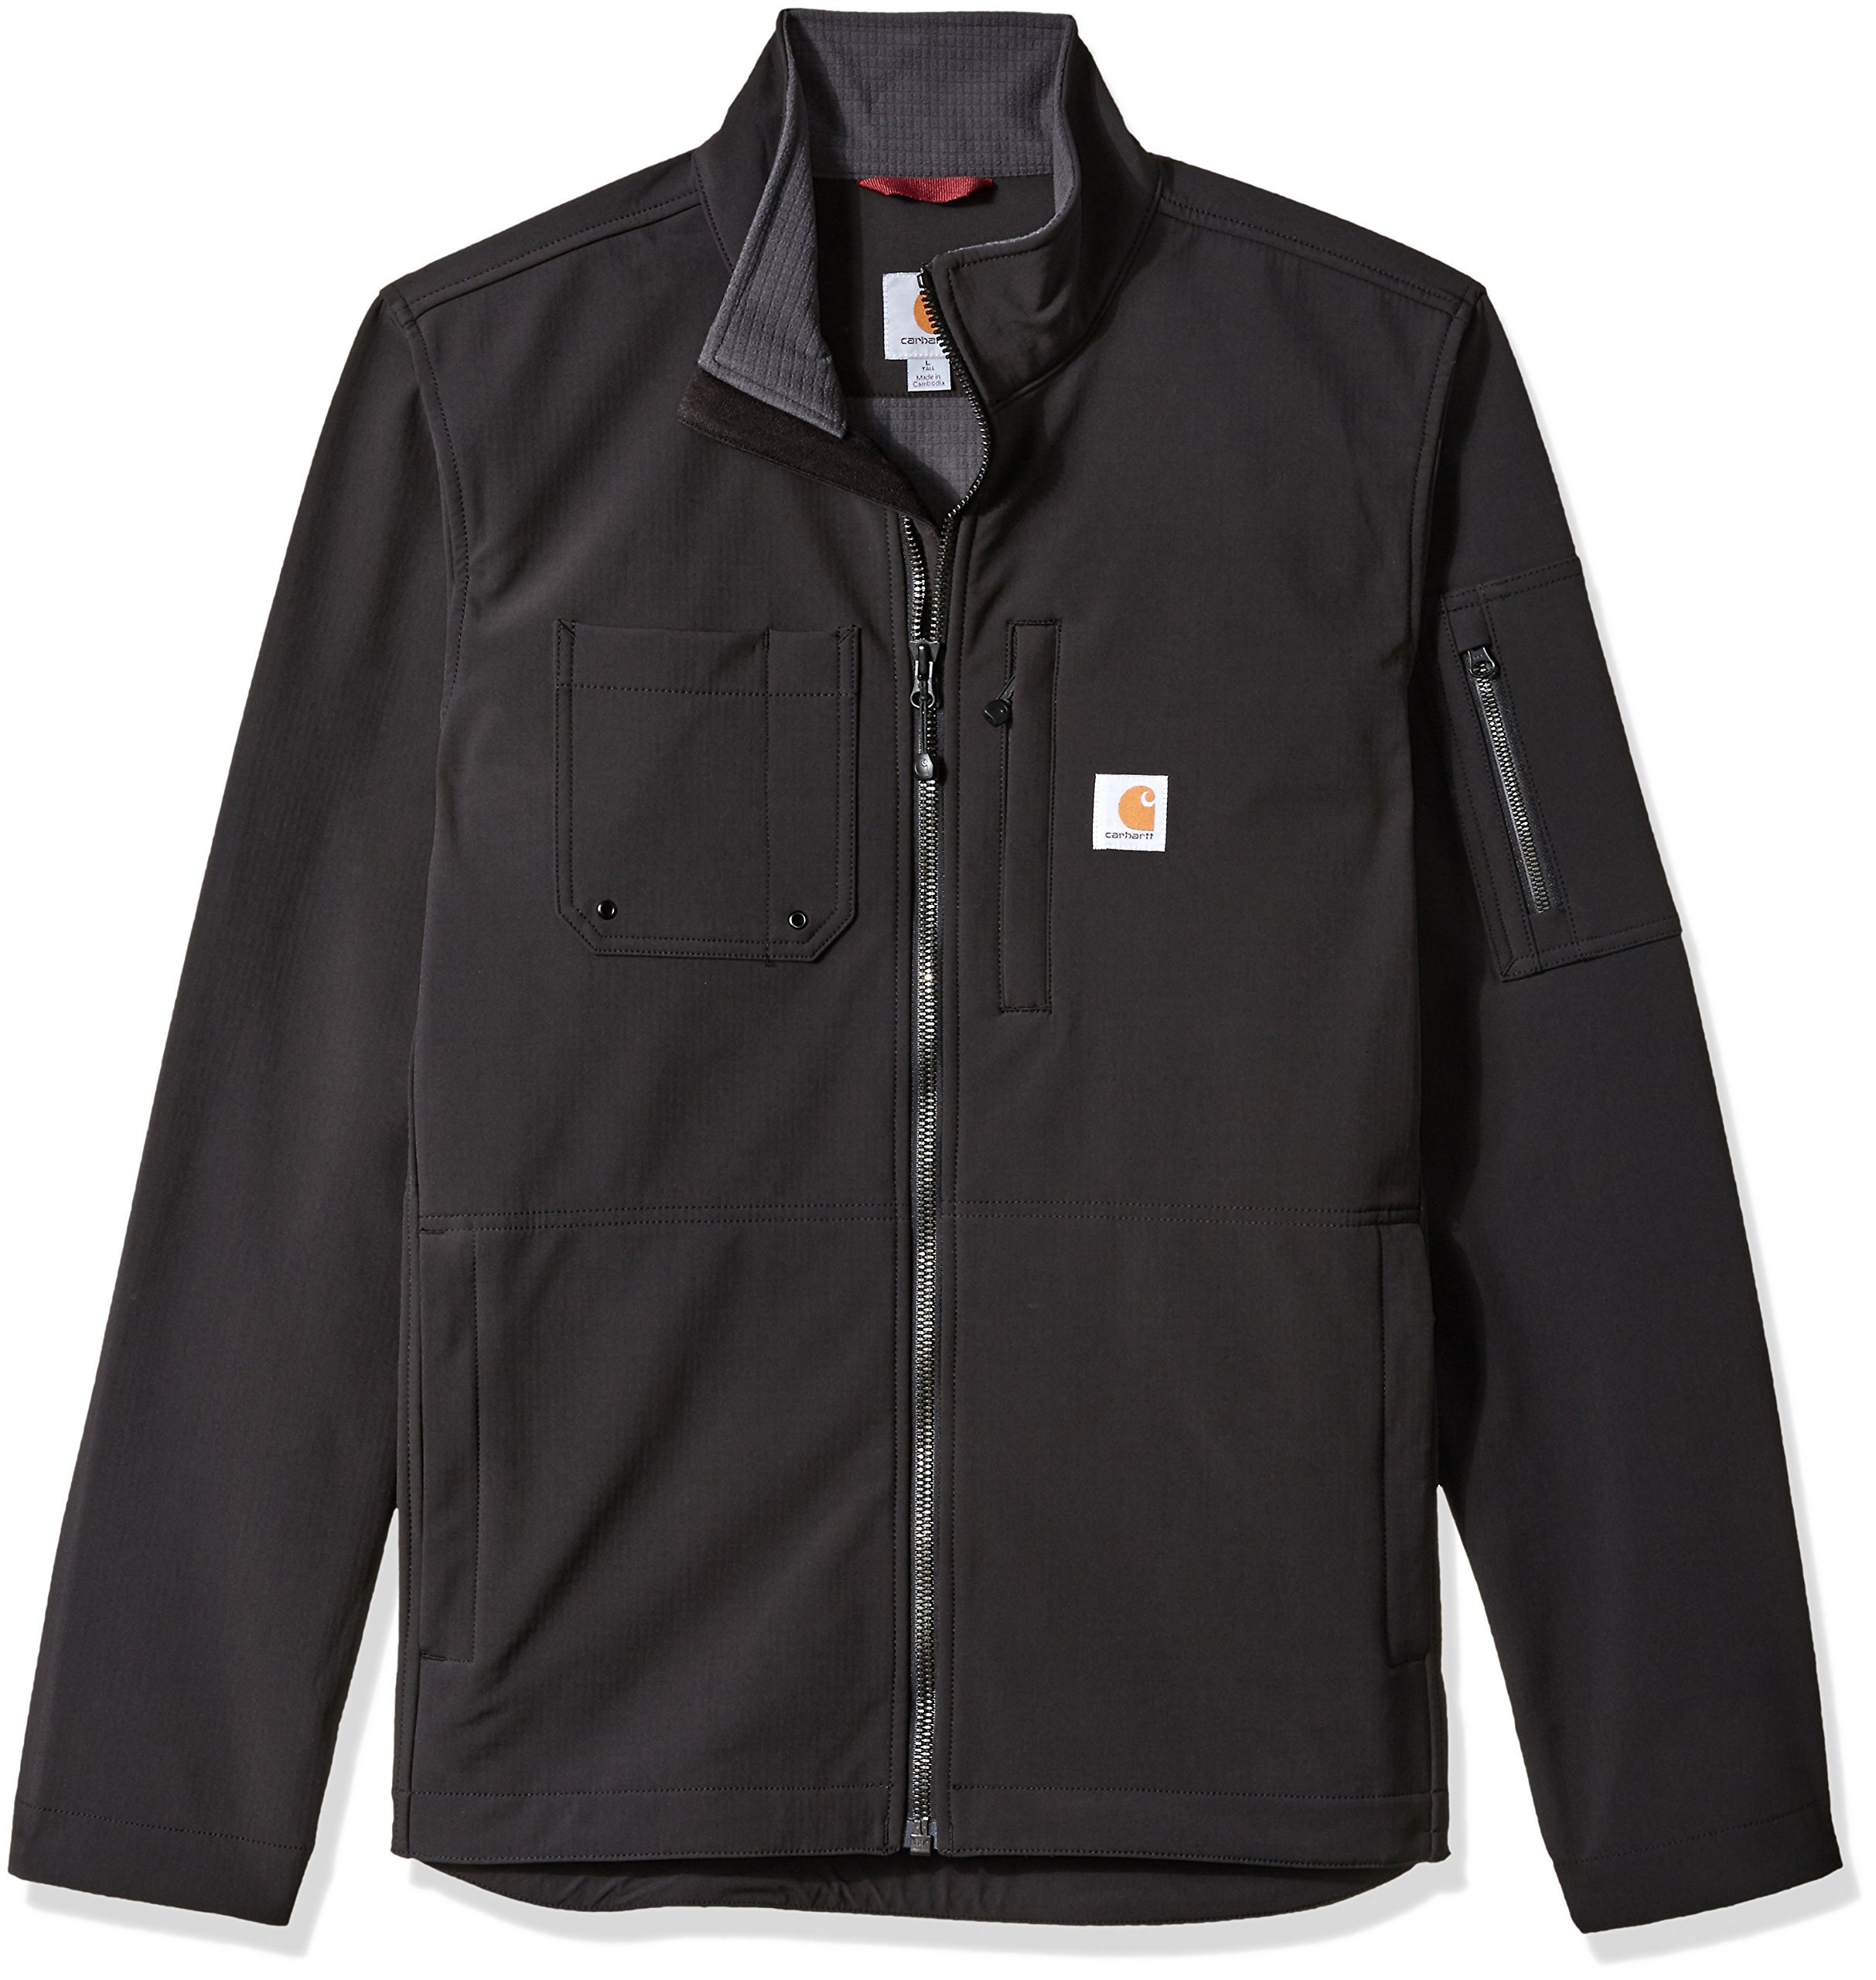 Carhartt Men's Big and Tall Rough Cut Jacket, Black, 3X-Large by Carhartt